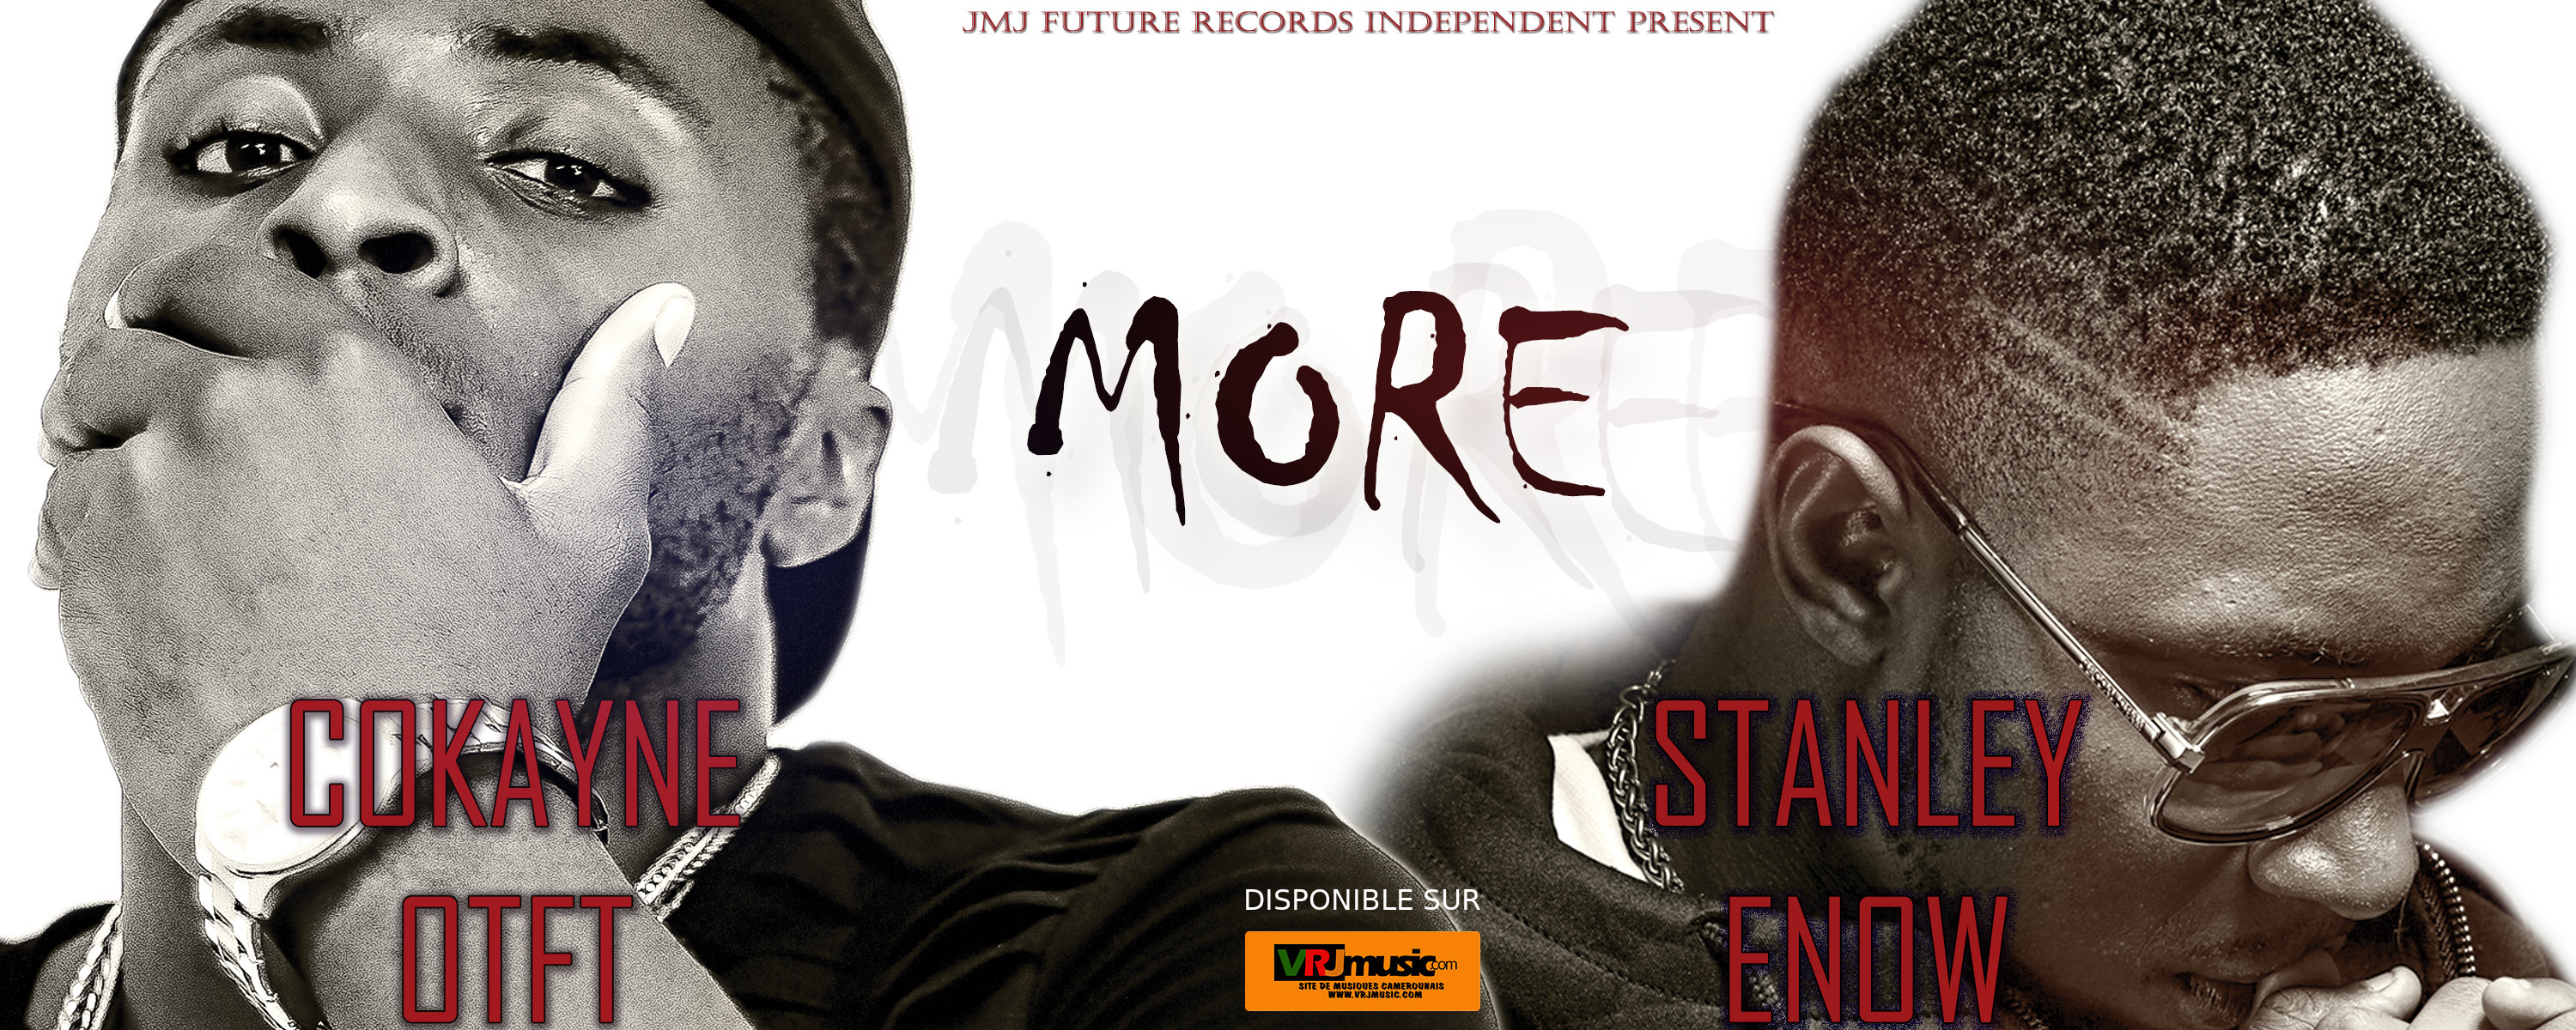 Cokayne OTFT - More ft Stanley Enow